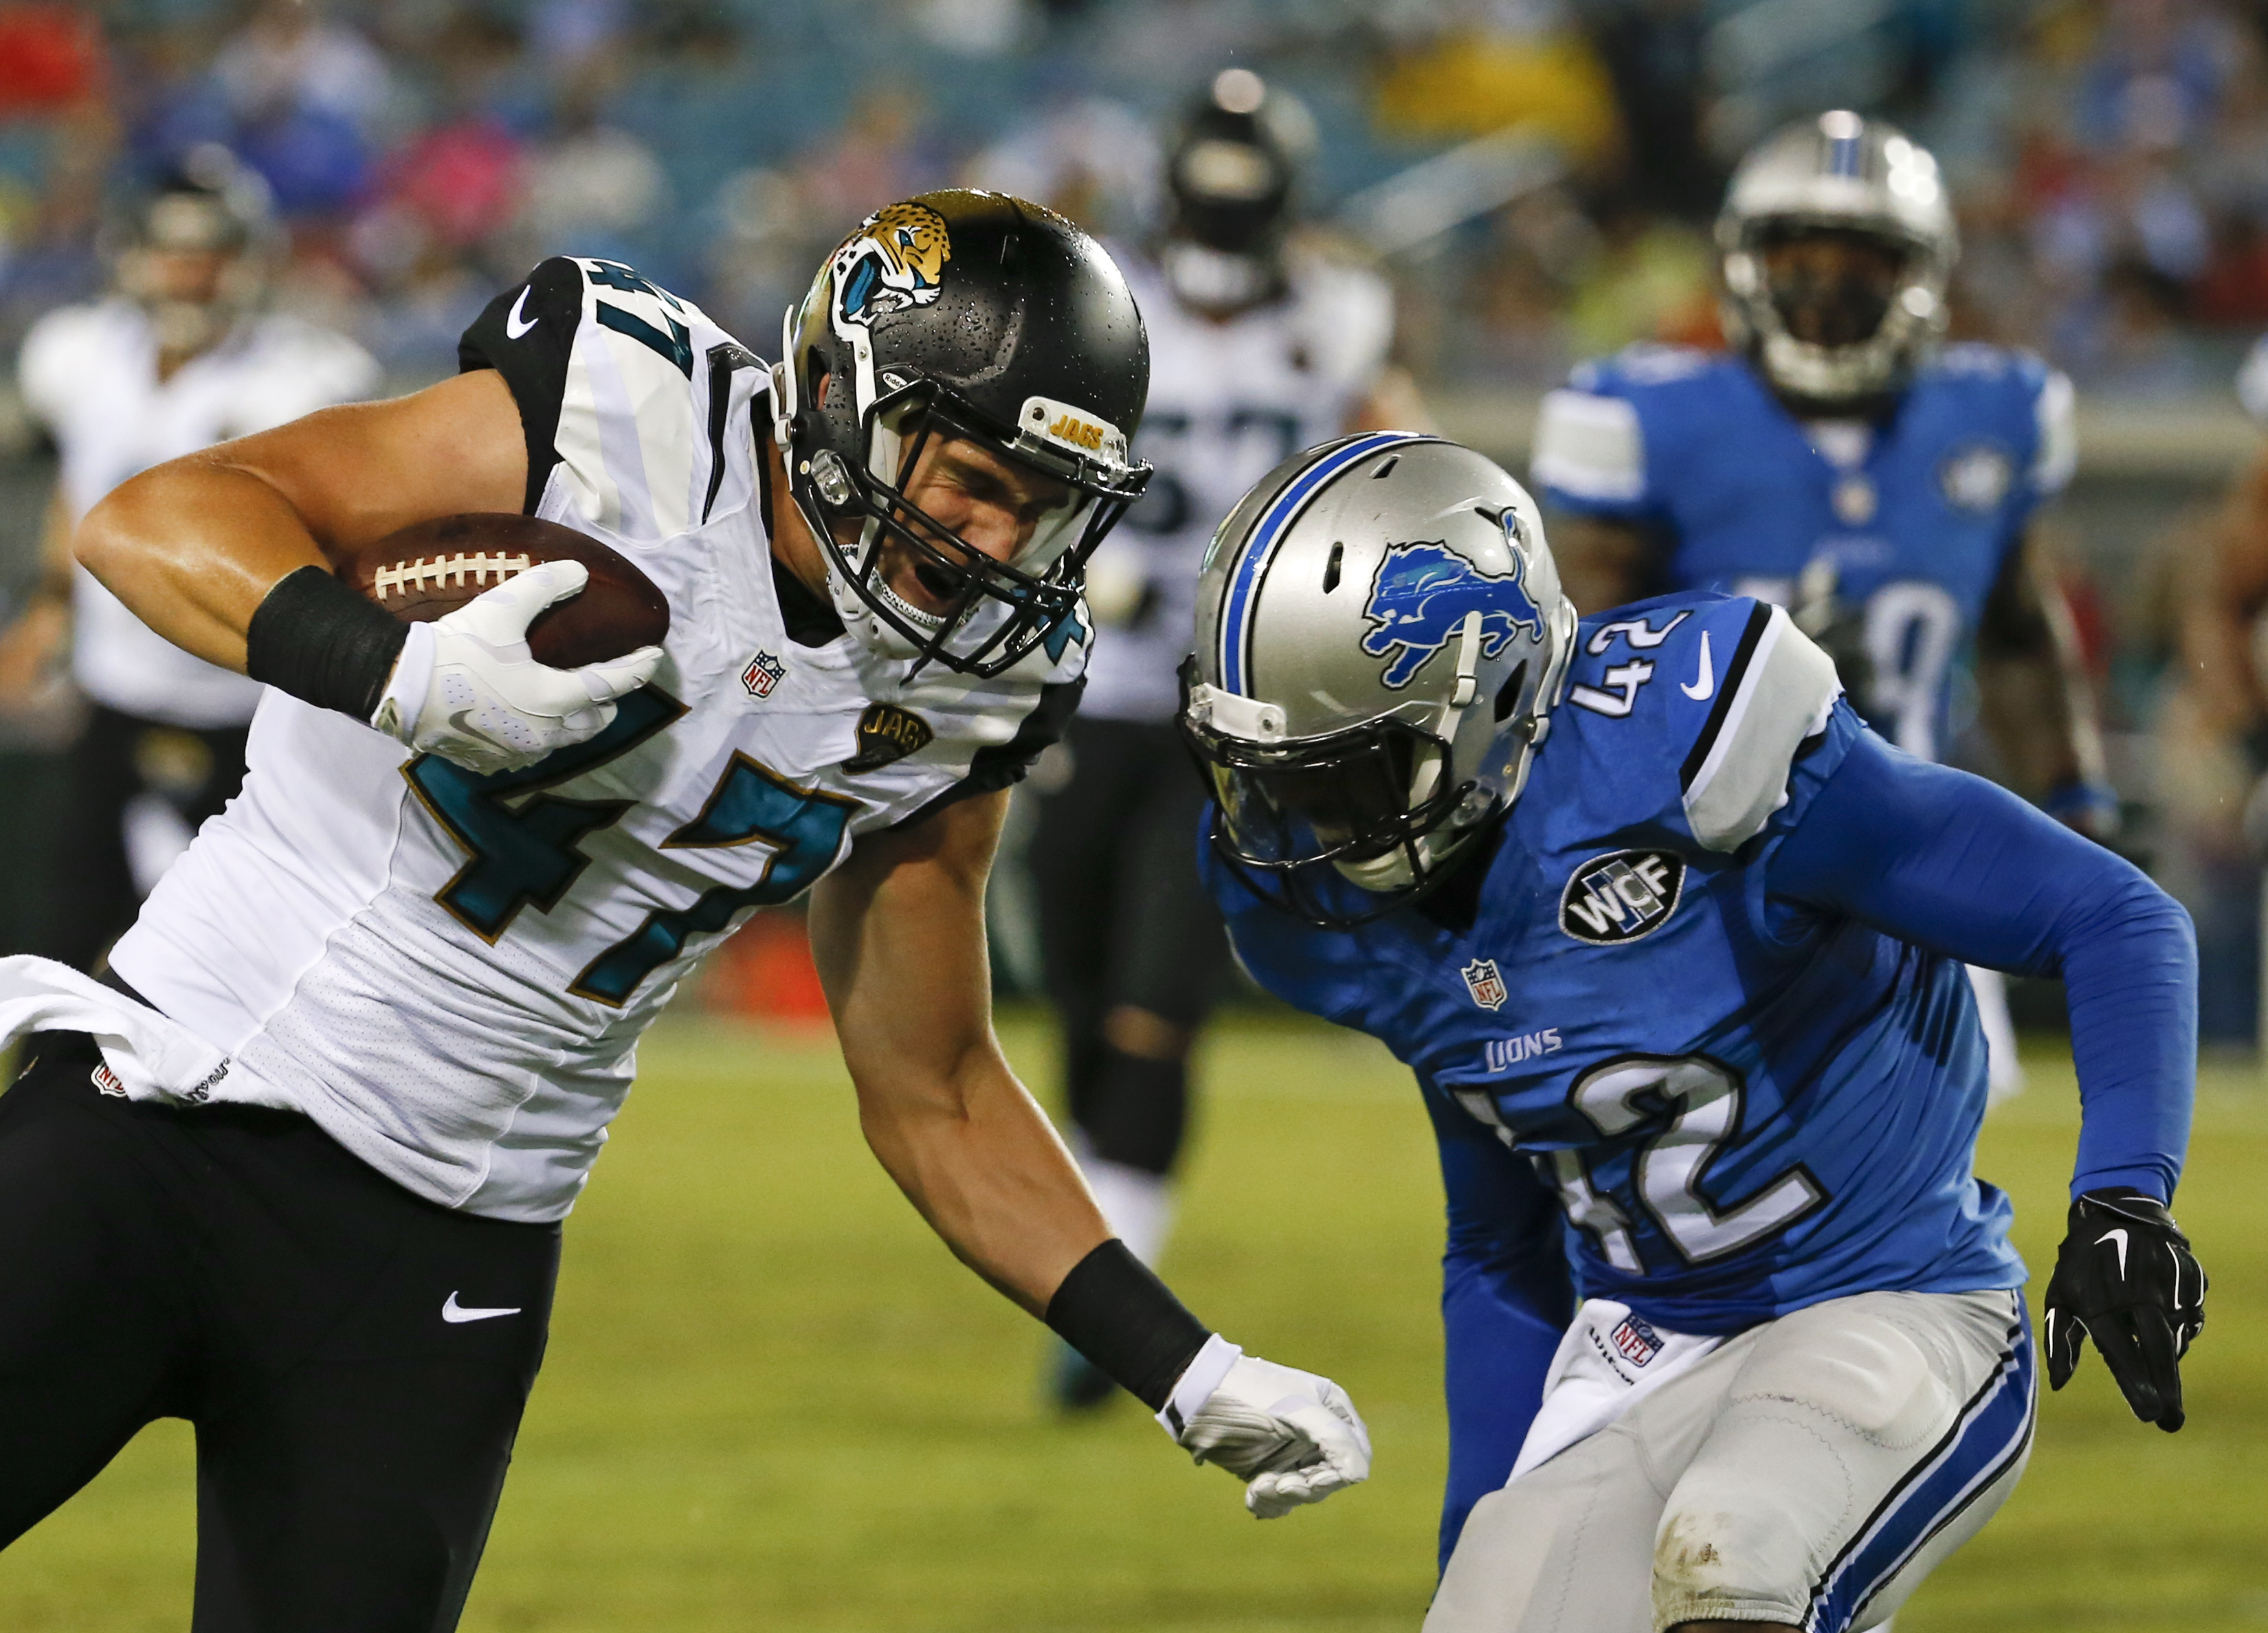 Jacksonville Jaguars tight end Connor Hamlett (47) runs against Detroit Lions strong safety Isa Abdul-Quddus (42) during the second half of an NFL preseason football game in Jacksonville, Fla., Friday, Aug. 28, 2015. (AP Photo/Stephen B. Morton)